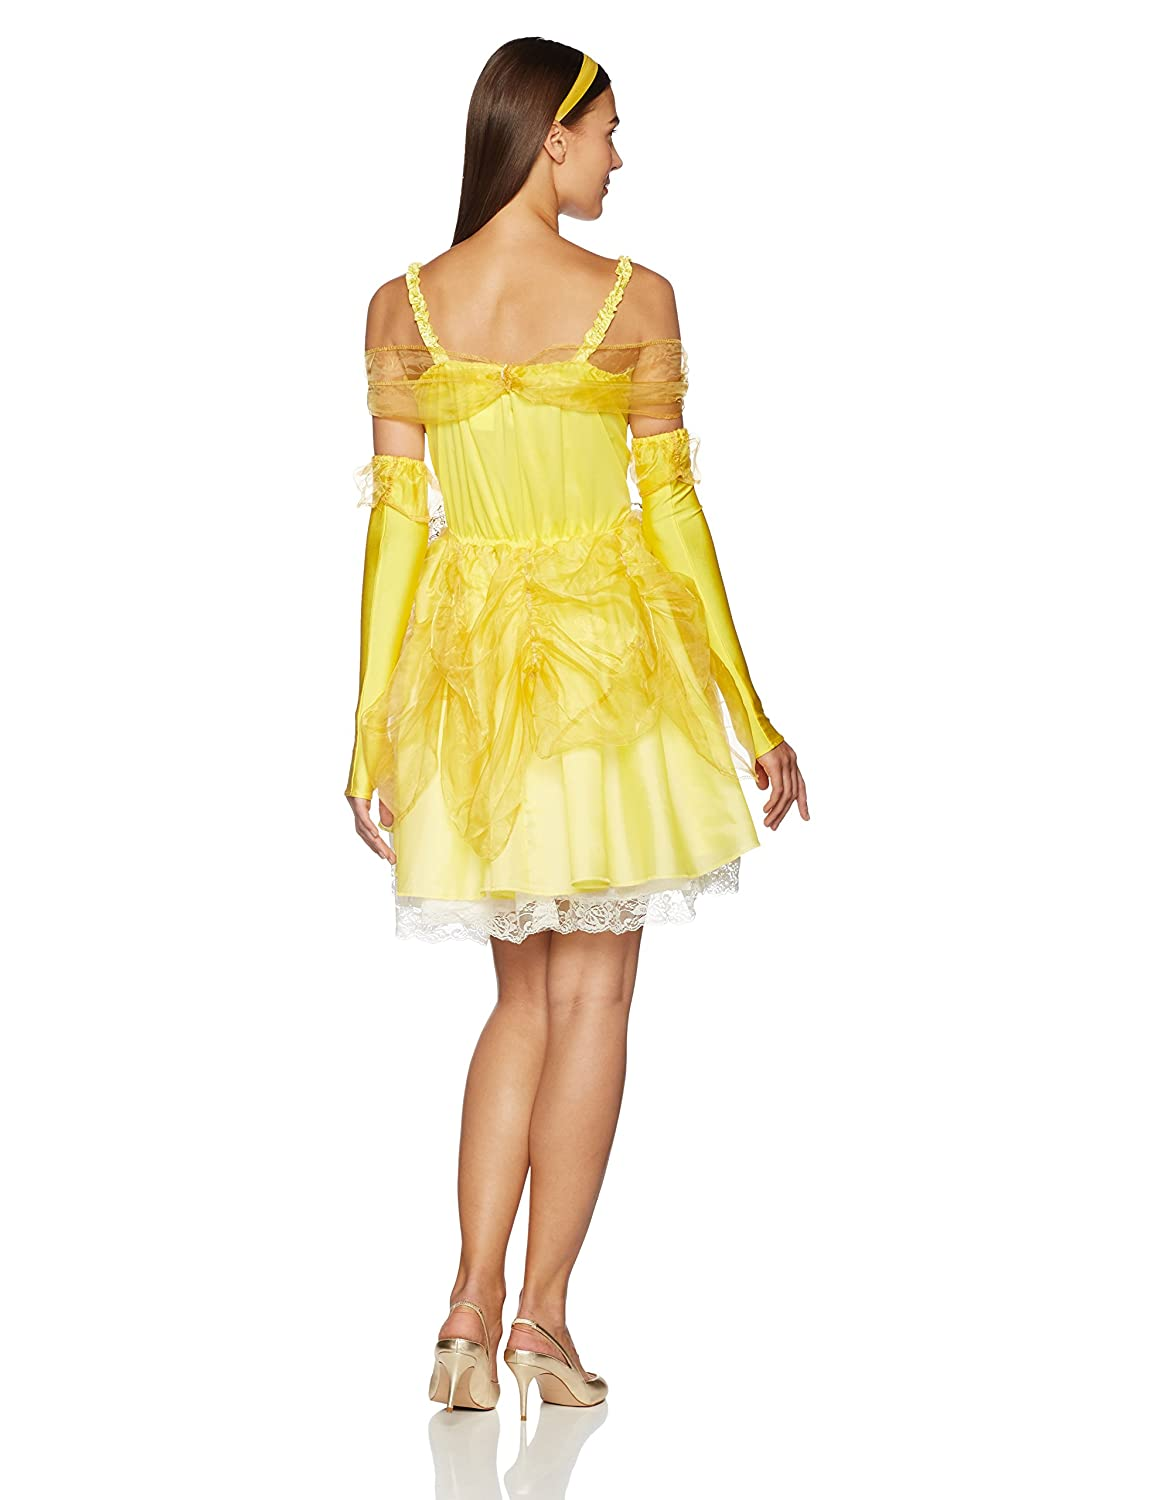 074a5e918808 Amazon.com  Disguise Disney Beauty And The Beast Sassy Belle Costume   Clothing